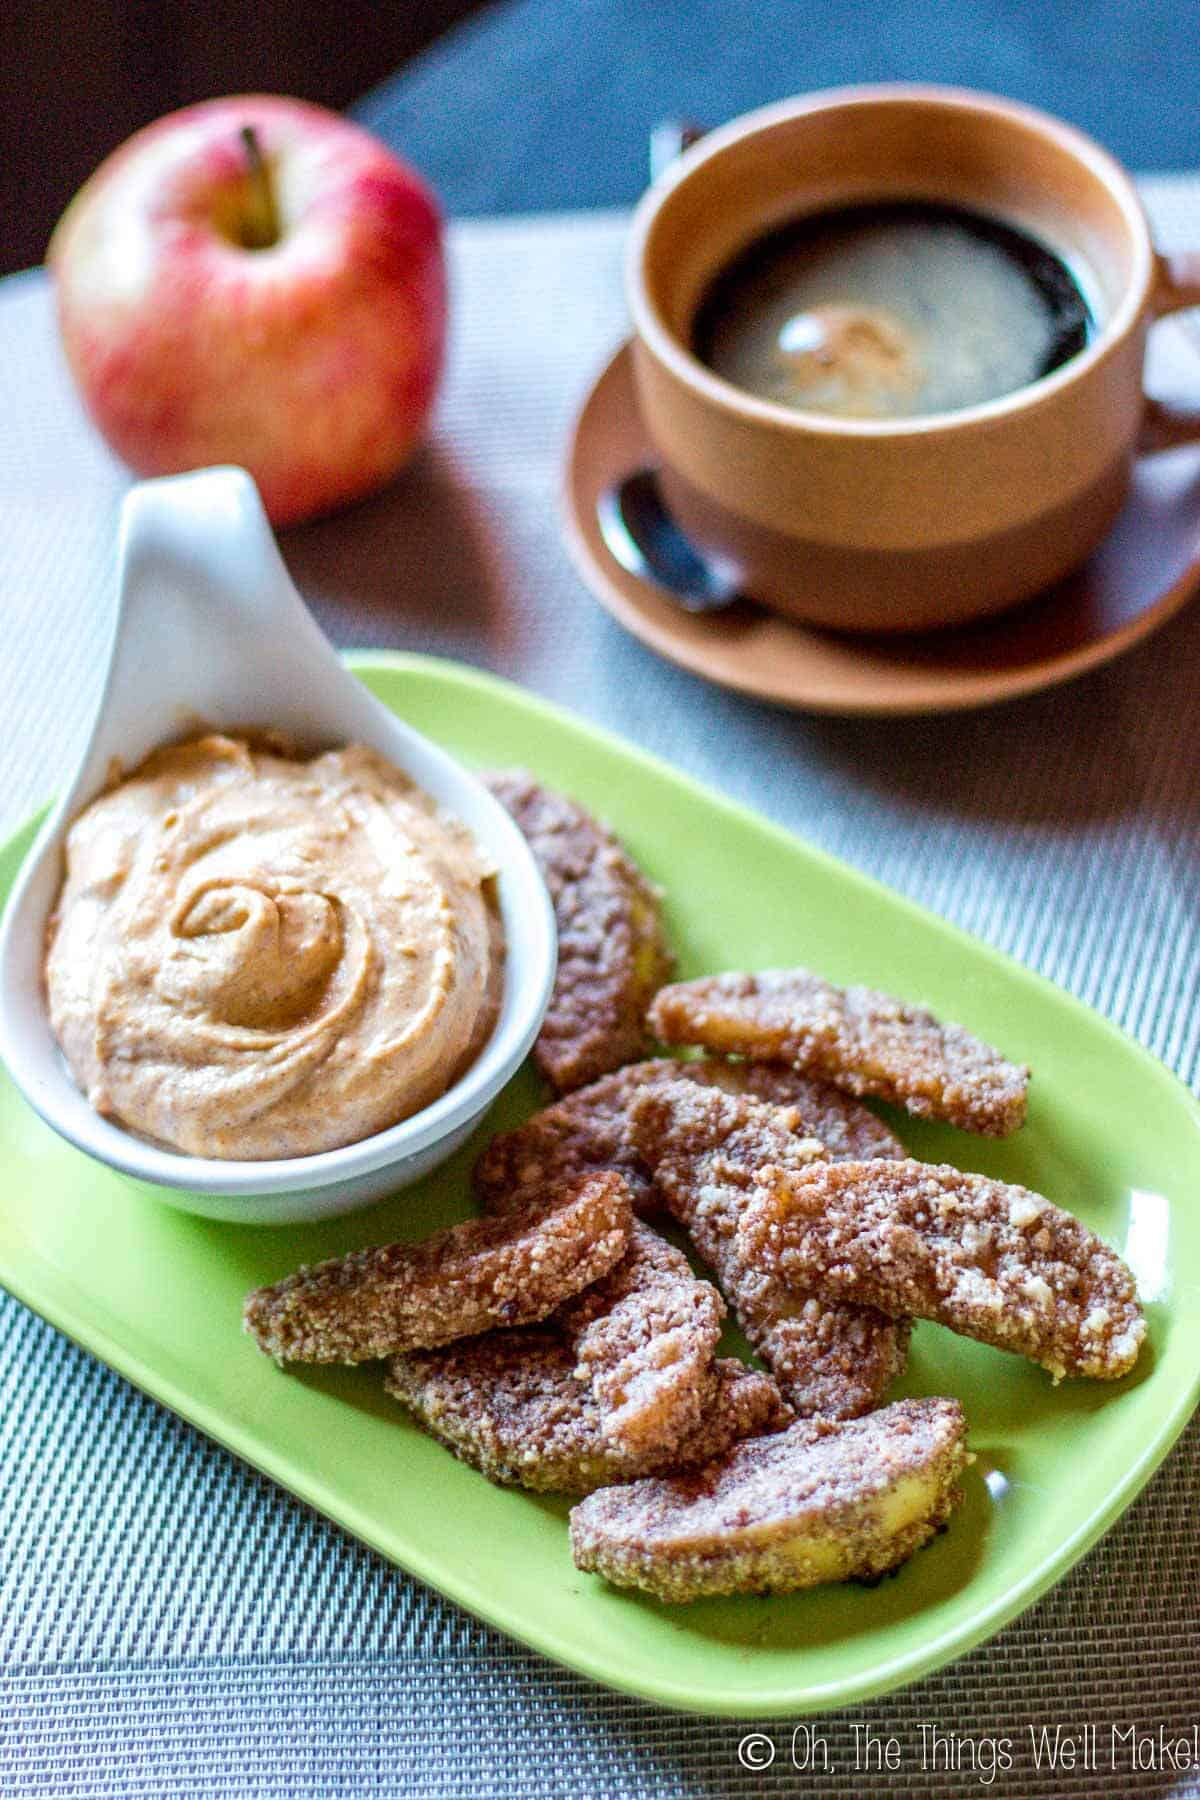 Paleo baked apple fries on a plate with pumpkin pie dip, served with coffee